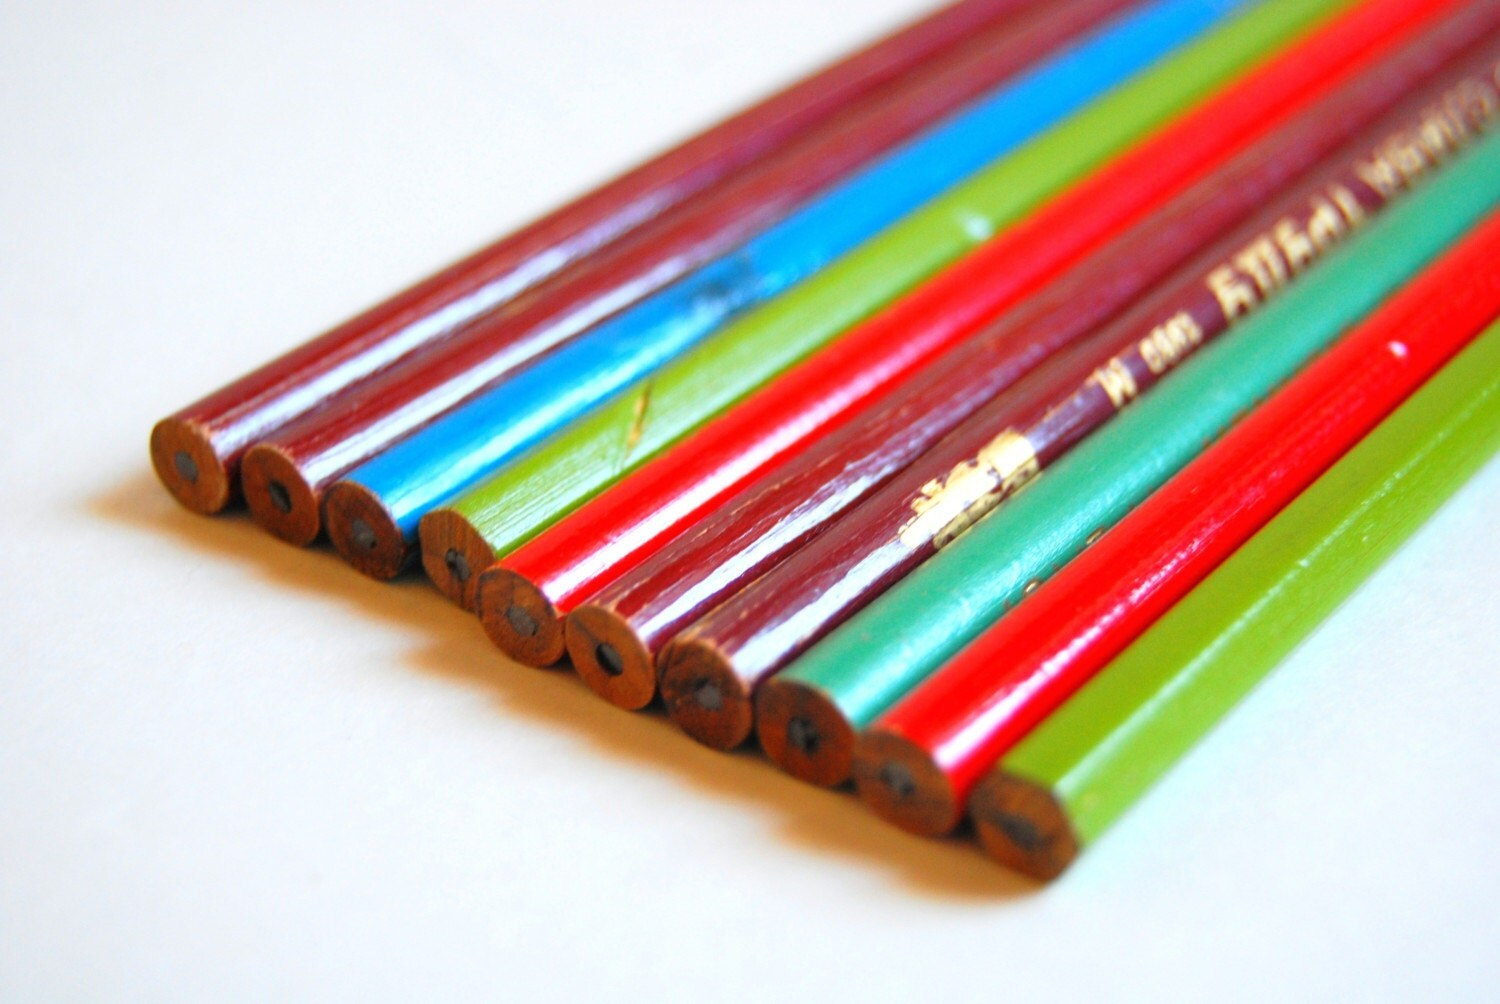 A set of 10 vintage pencils from Soviet Union